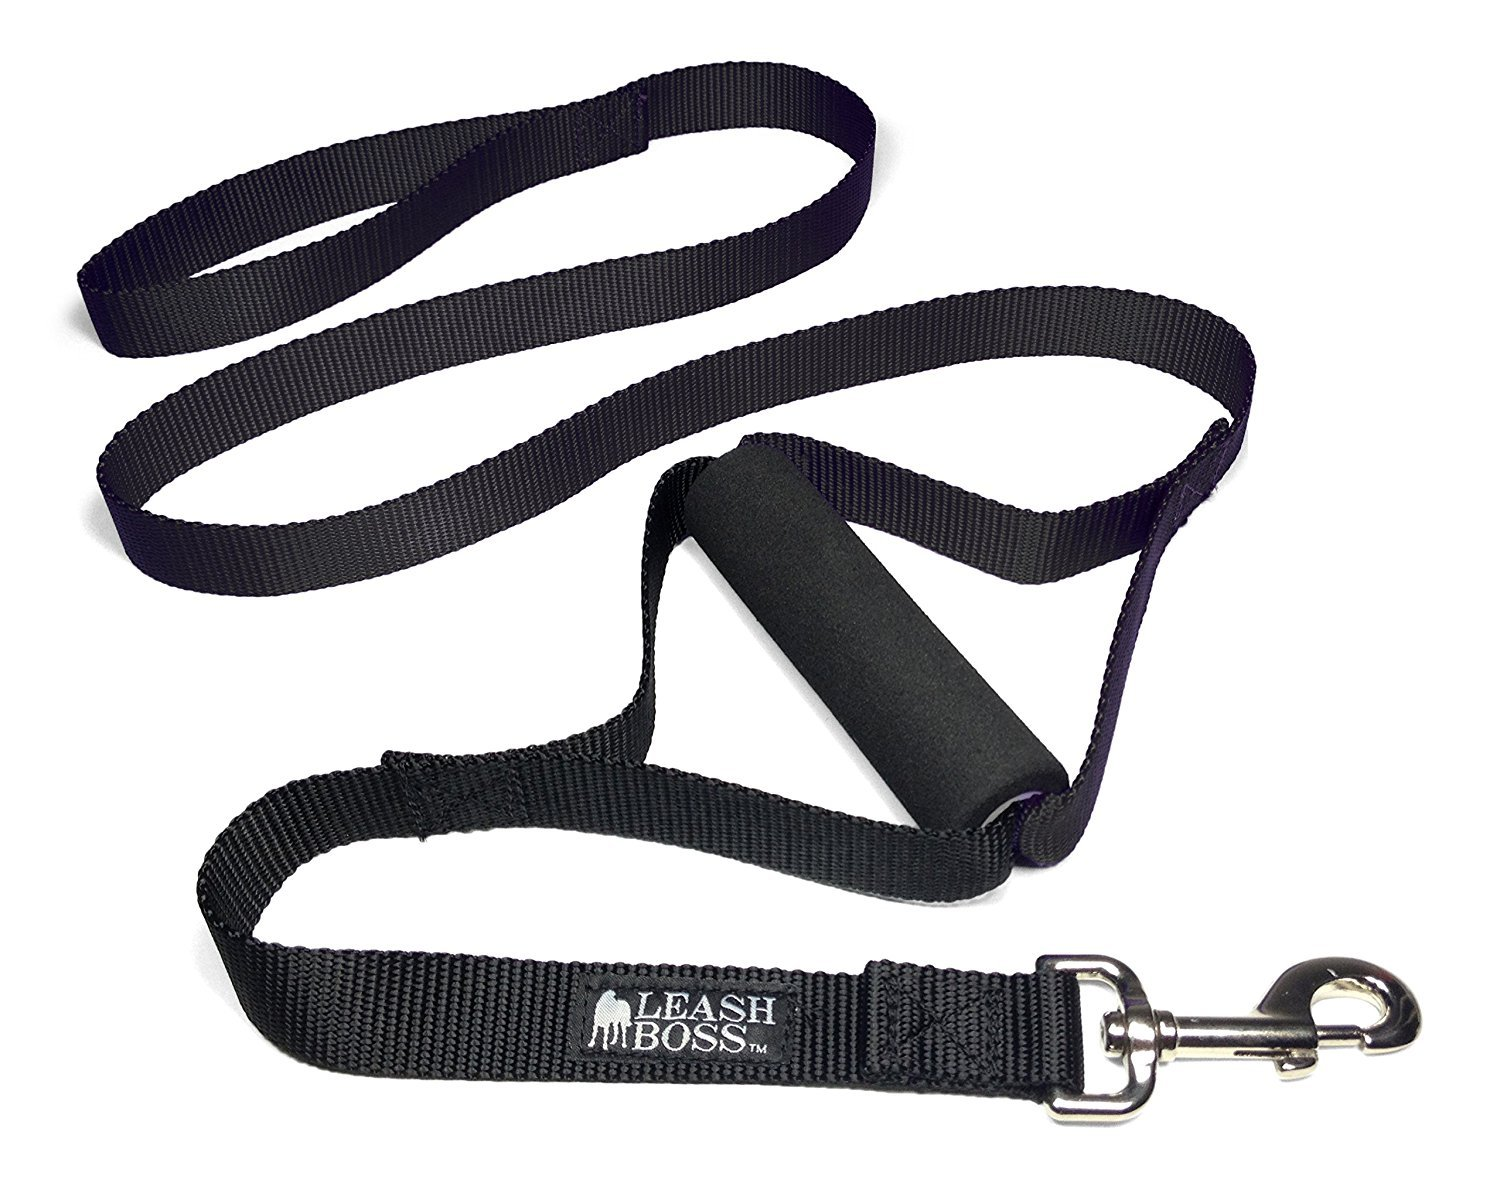 Black Leashboss Lite Two Handle Training Leash for Large Dogs Heavy Duty Double Traffic Handle Lead (Black)